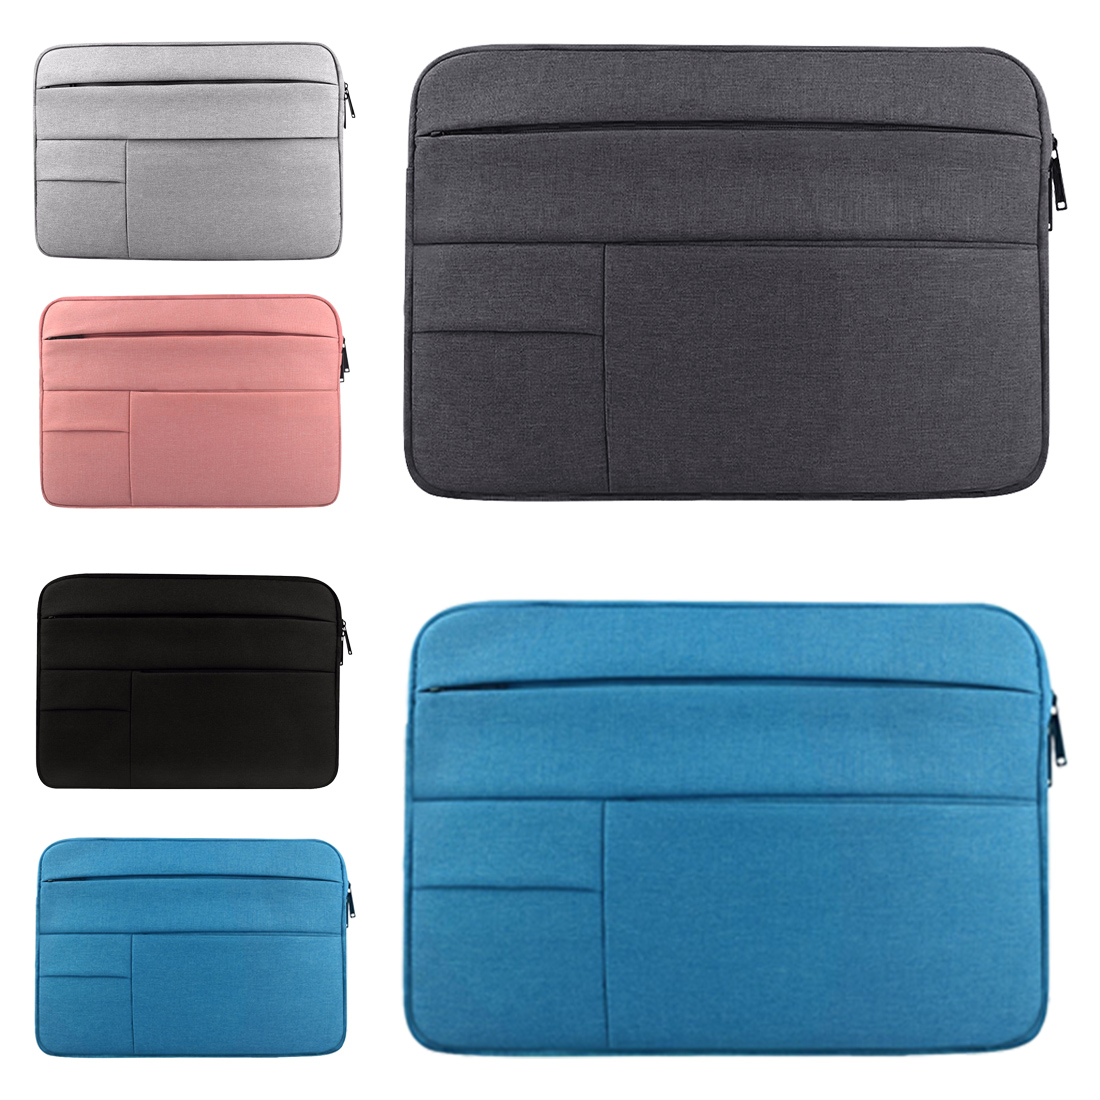 Image 3 - Laptop Sleeve bag for Dell Asus Lenovo HP Acer Computer 11 12 13 14 15 inch for Macbook Air Pro Notebook 15.6 Sleeve Case Simple-in Laptop Bags & Cases from Computer & Office